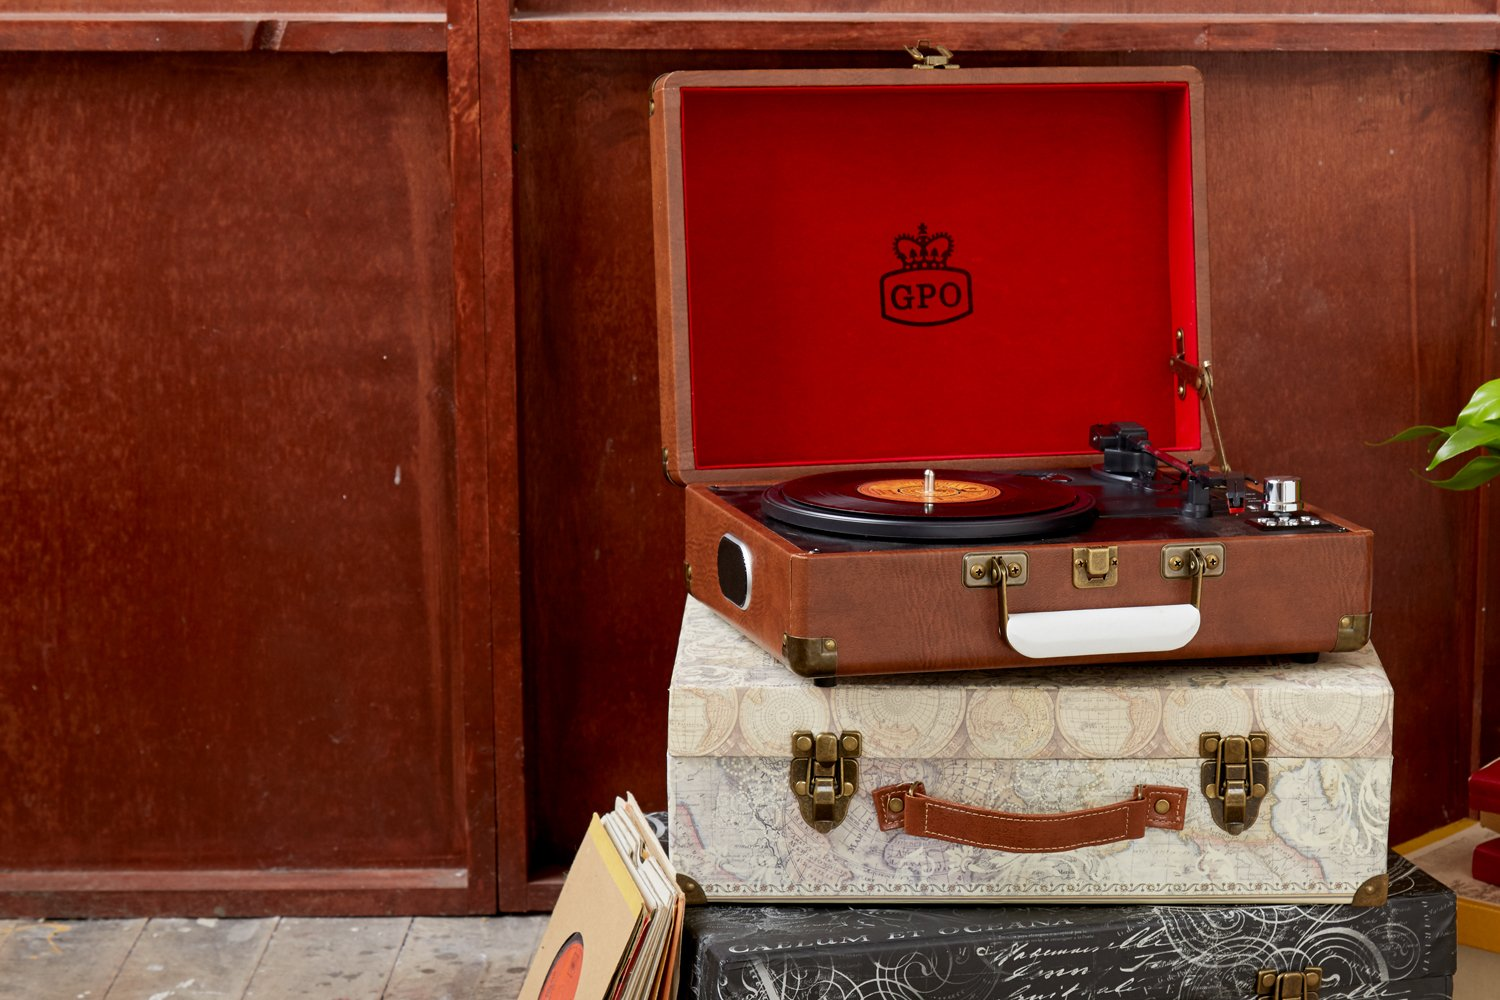 GPO Attaché Turntables - Record Players